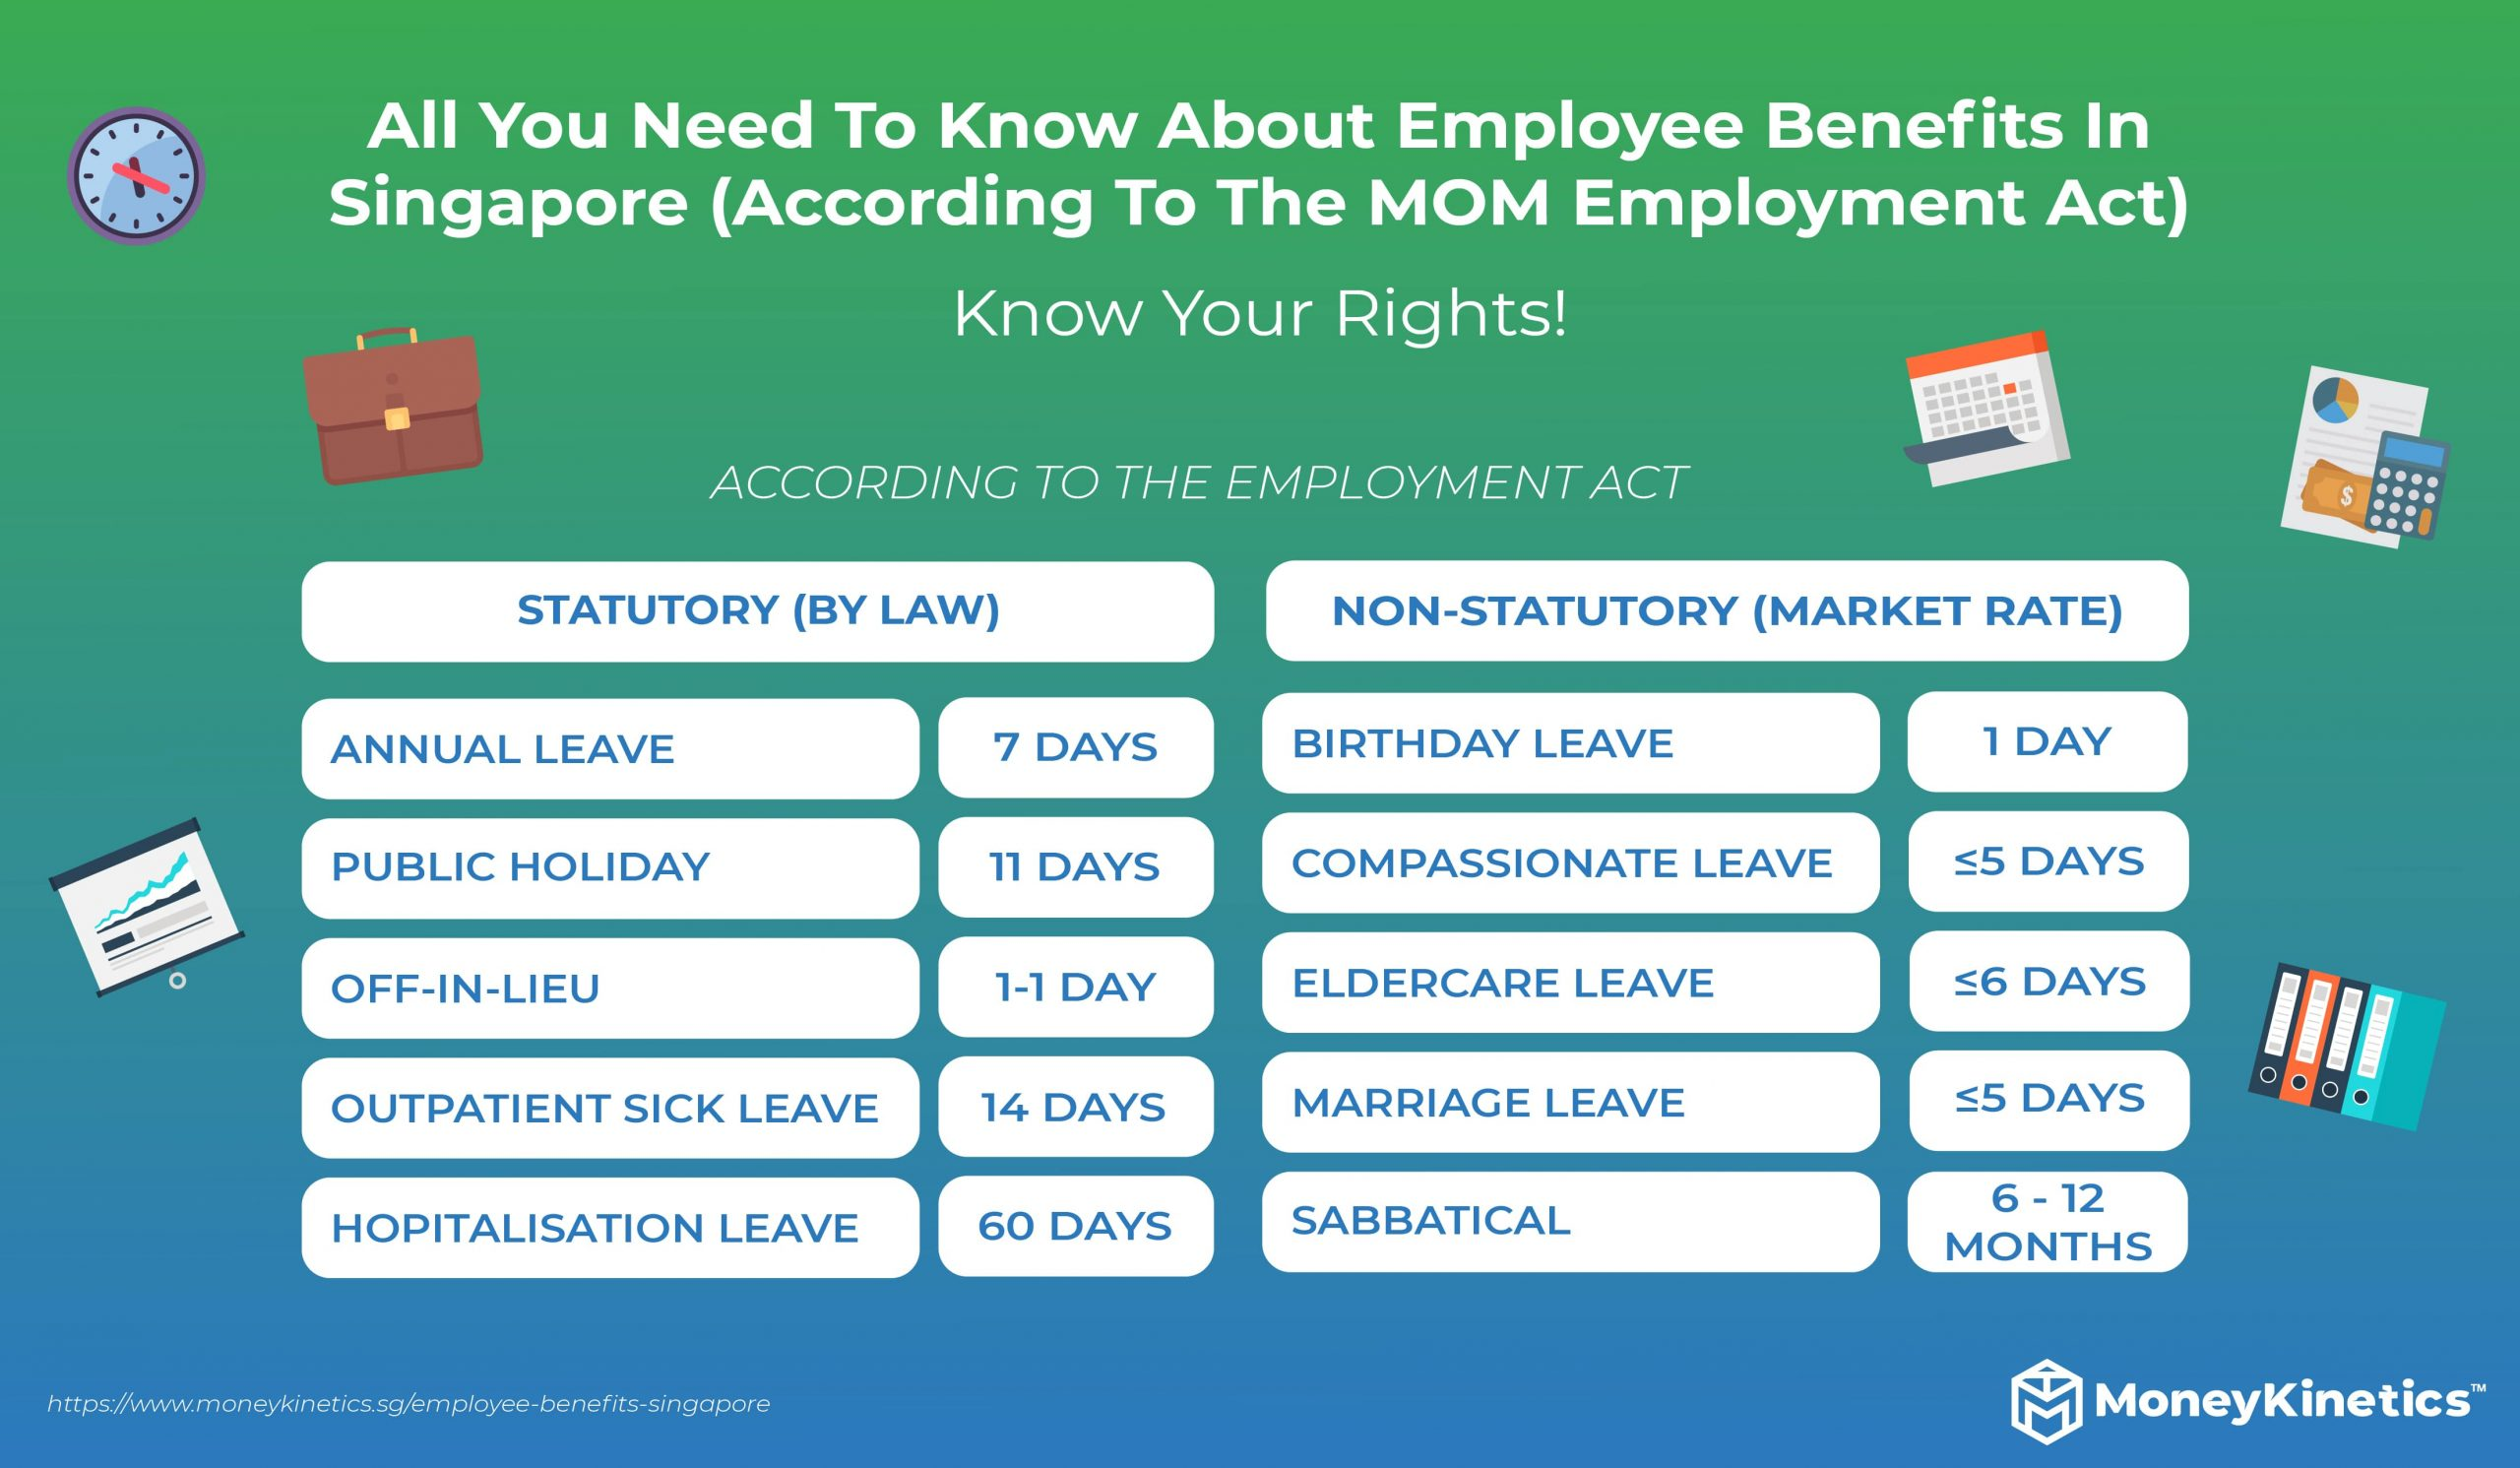 All-You -Need-To-Know-About-Employee-Benefits-In-Singapore-Annual-Leave-Off-in-lieu-Hospitalisation-Leave-etc